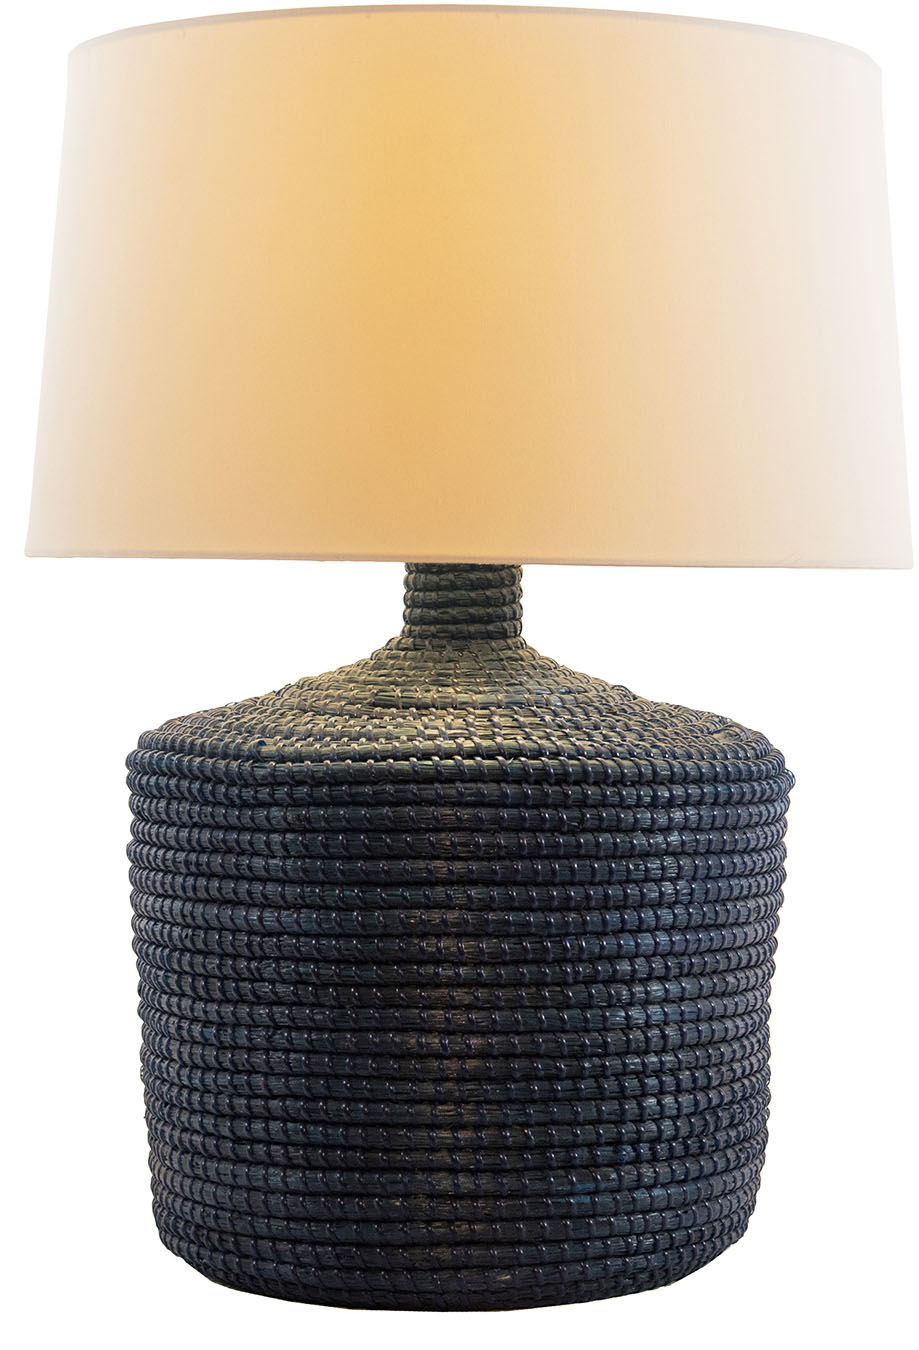 Cassone Table Lamp, Indigowht